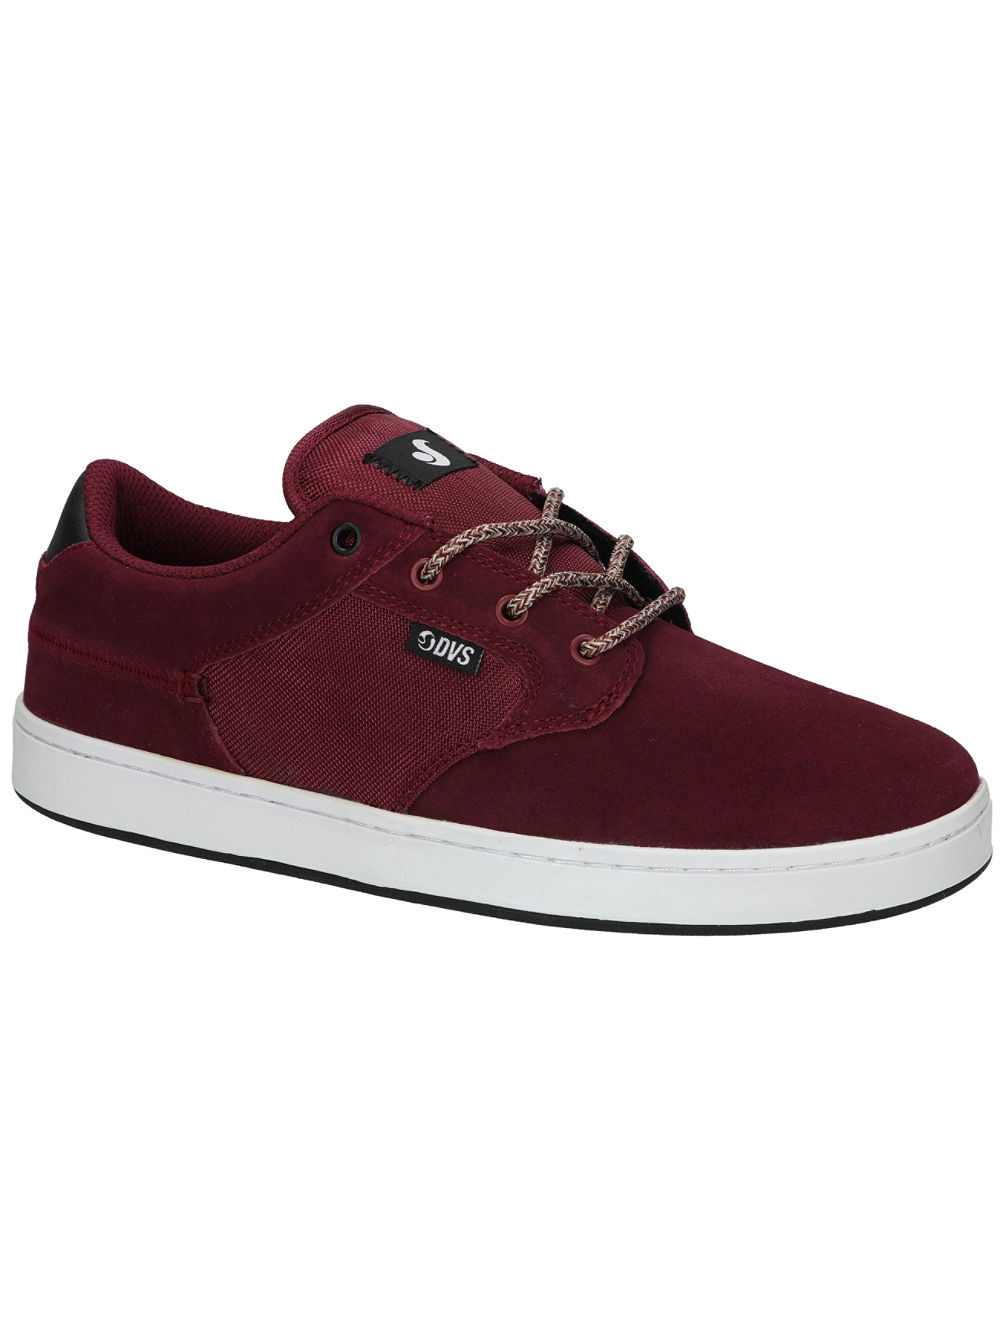 Quentin Skate Shoes